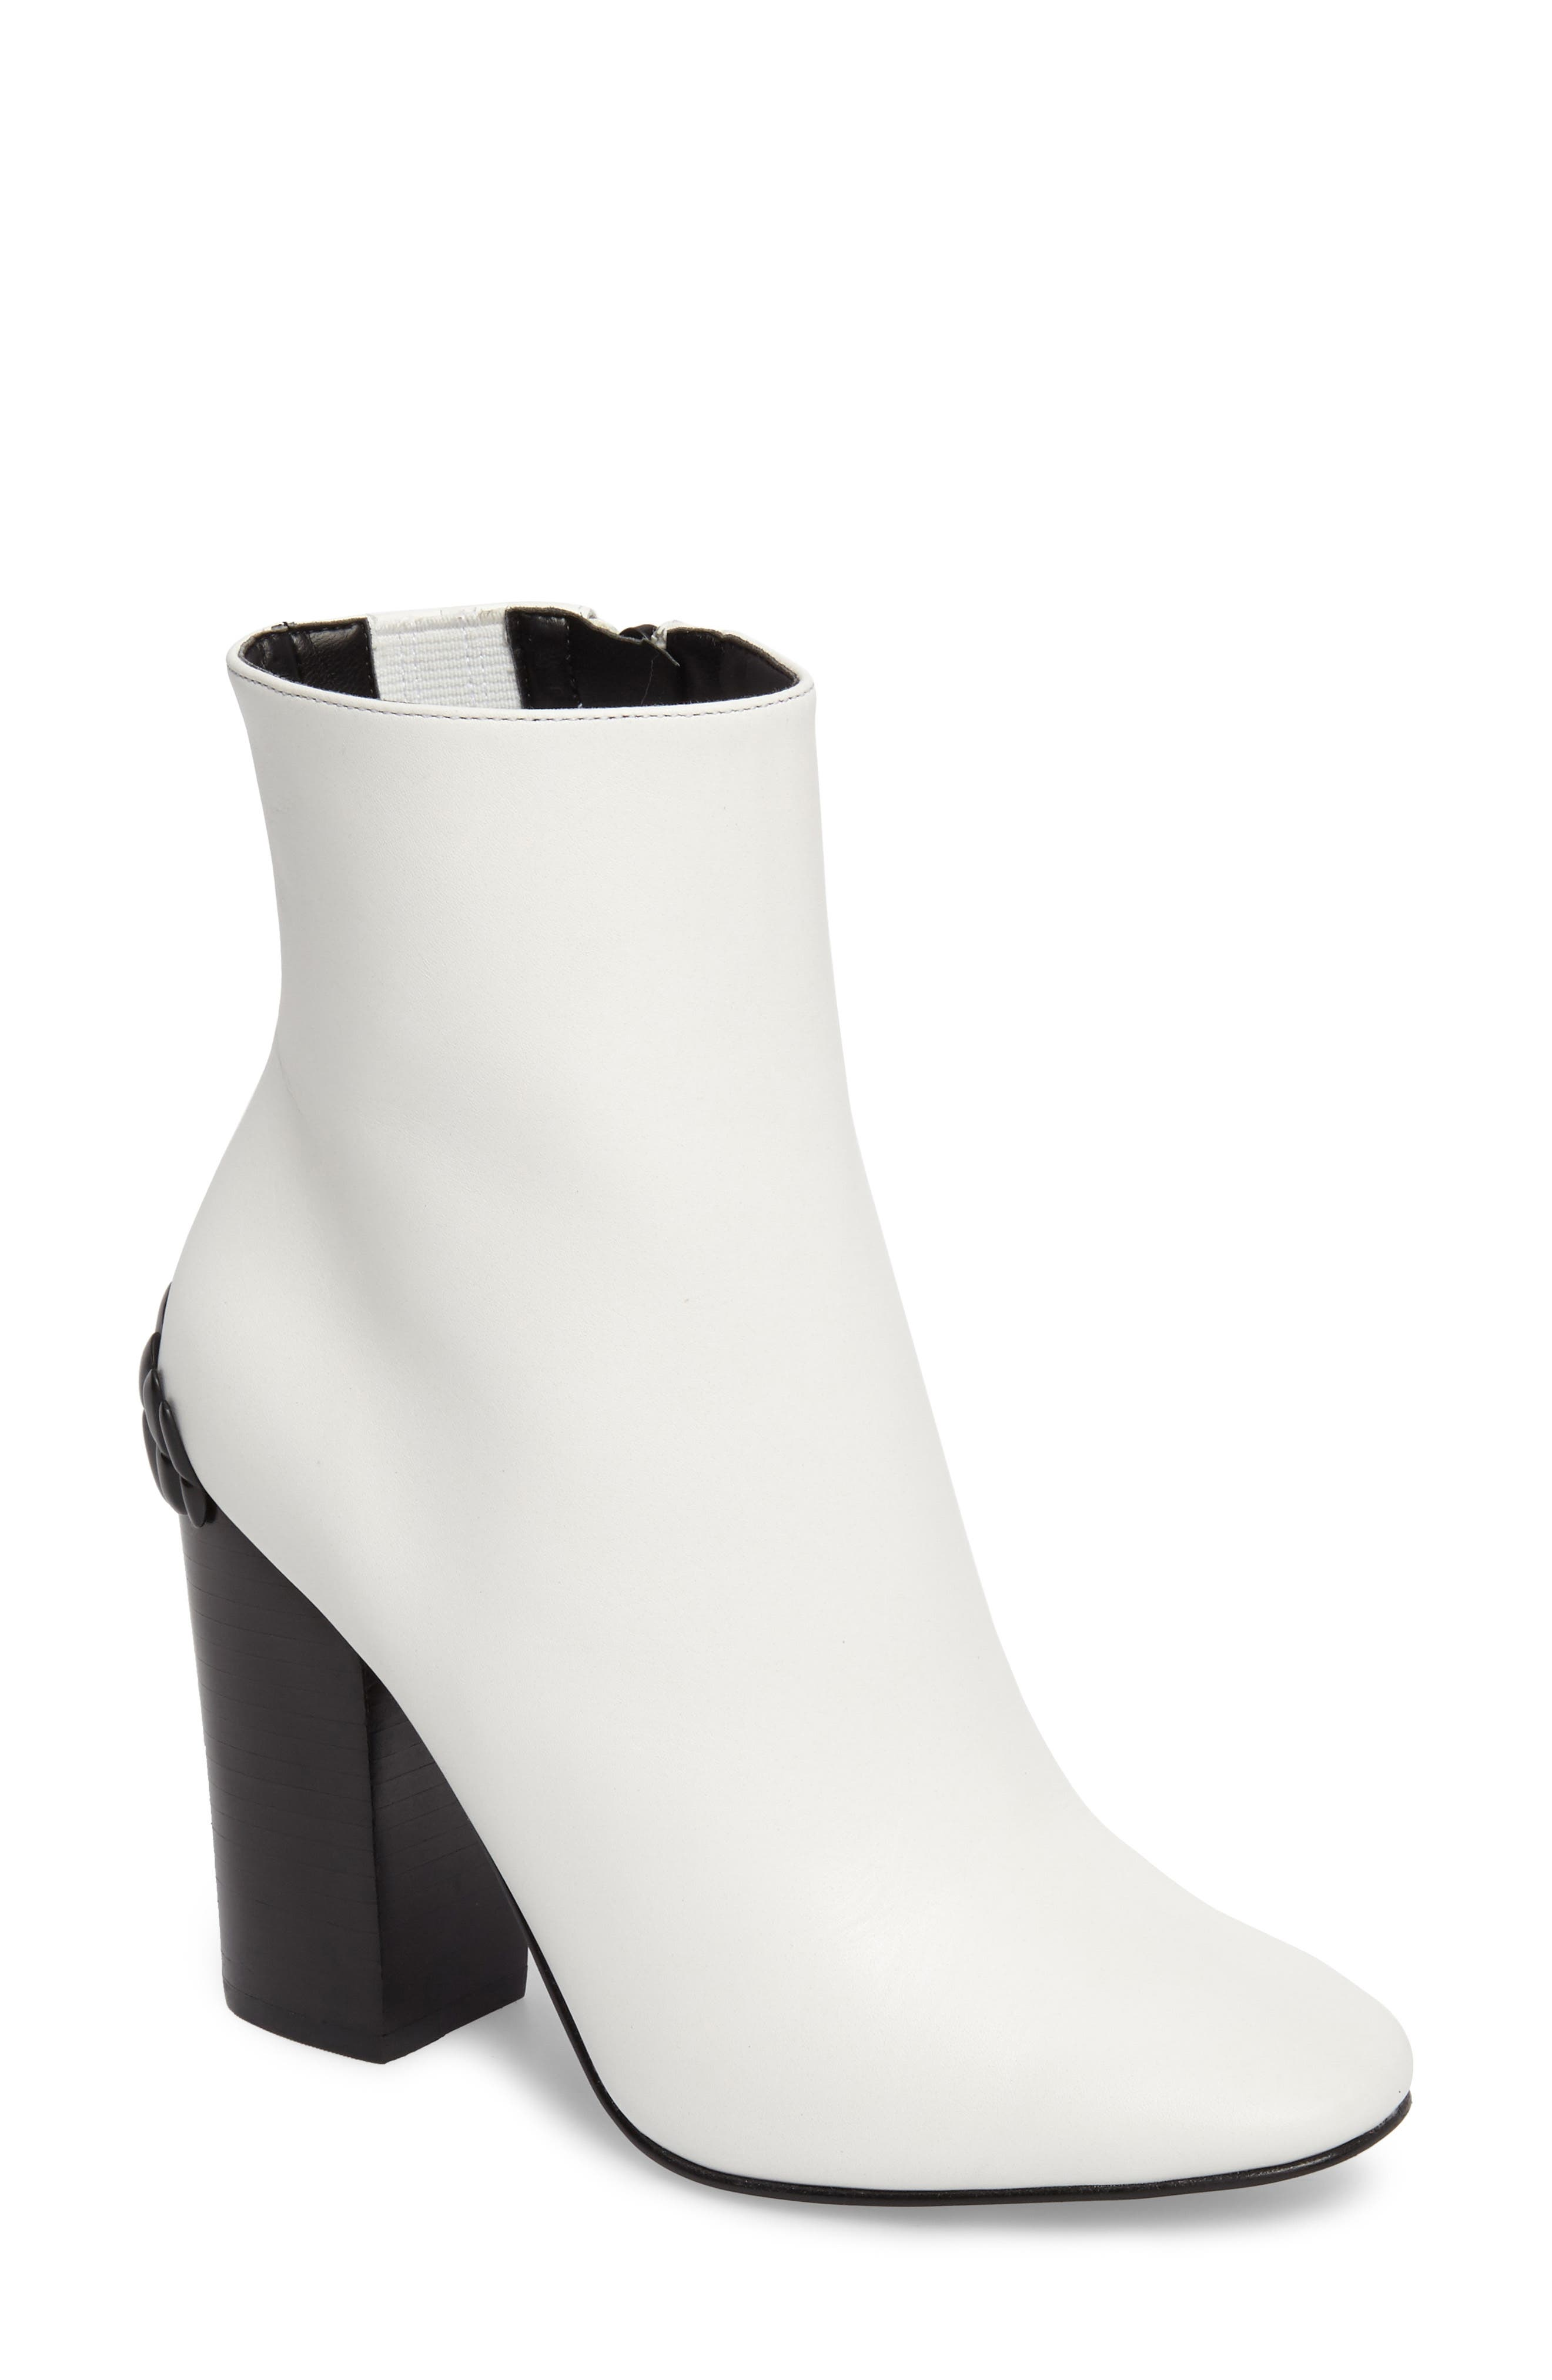 Haedyn Bootie,                             Main thumbnail 1, color,                             White Leather